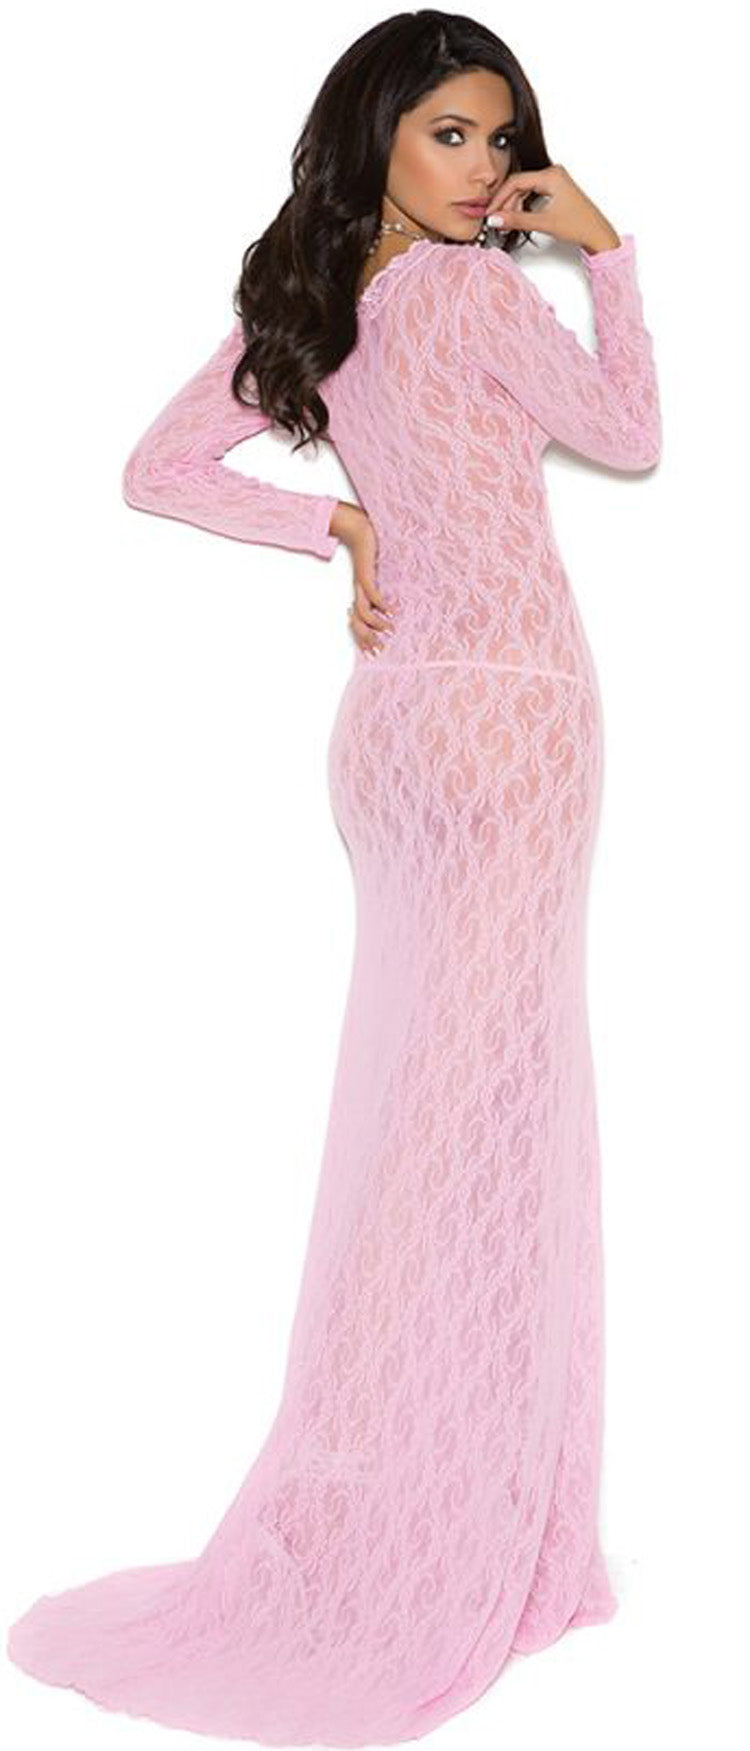 EM-1949 Long sleeve lace gown back